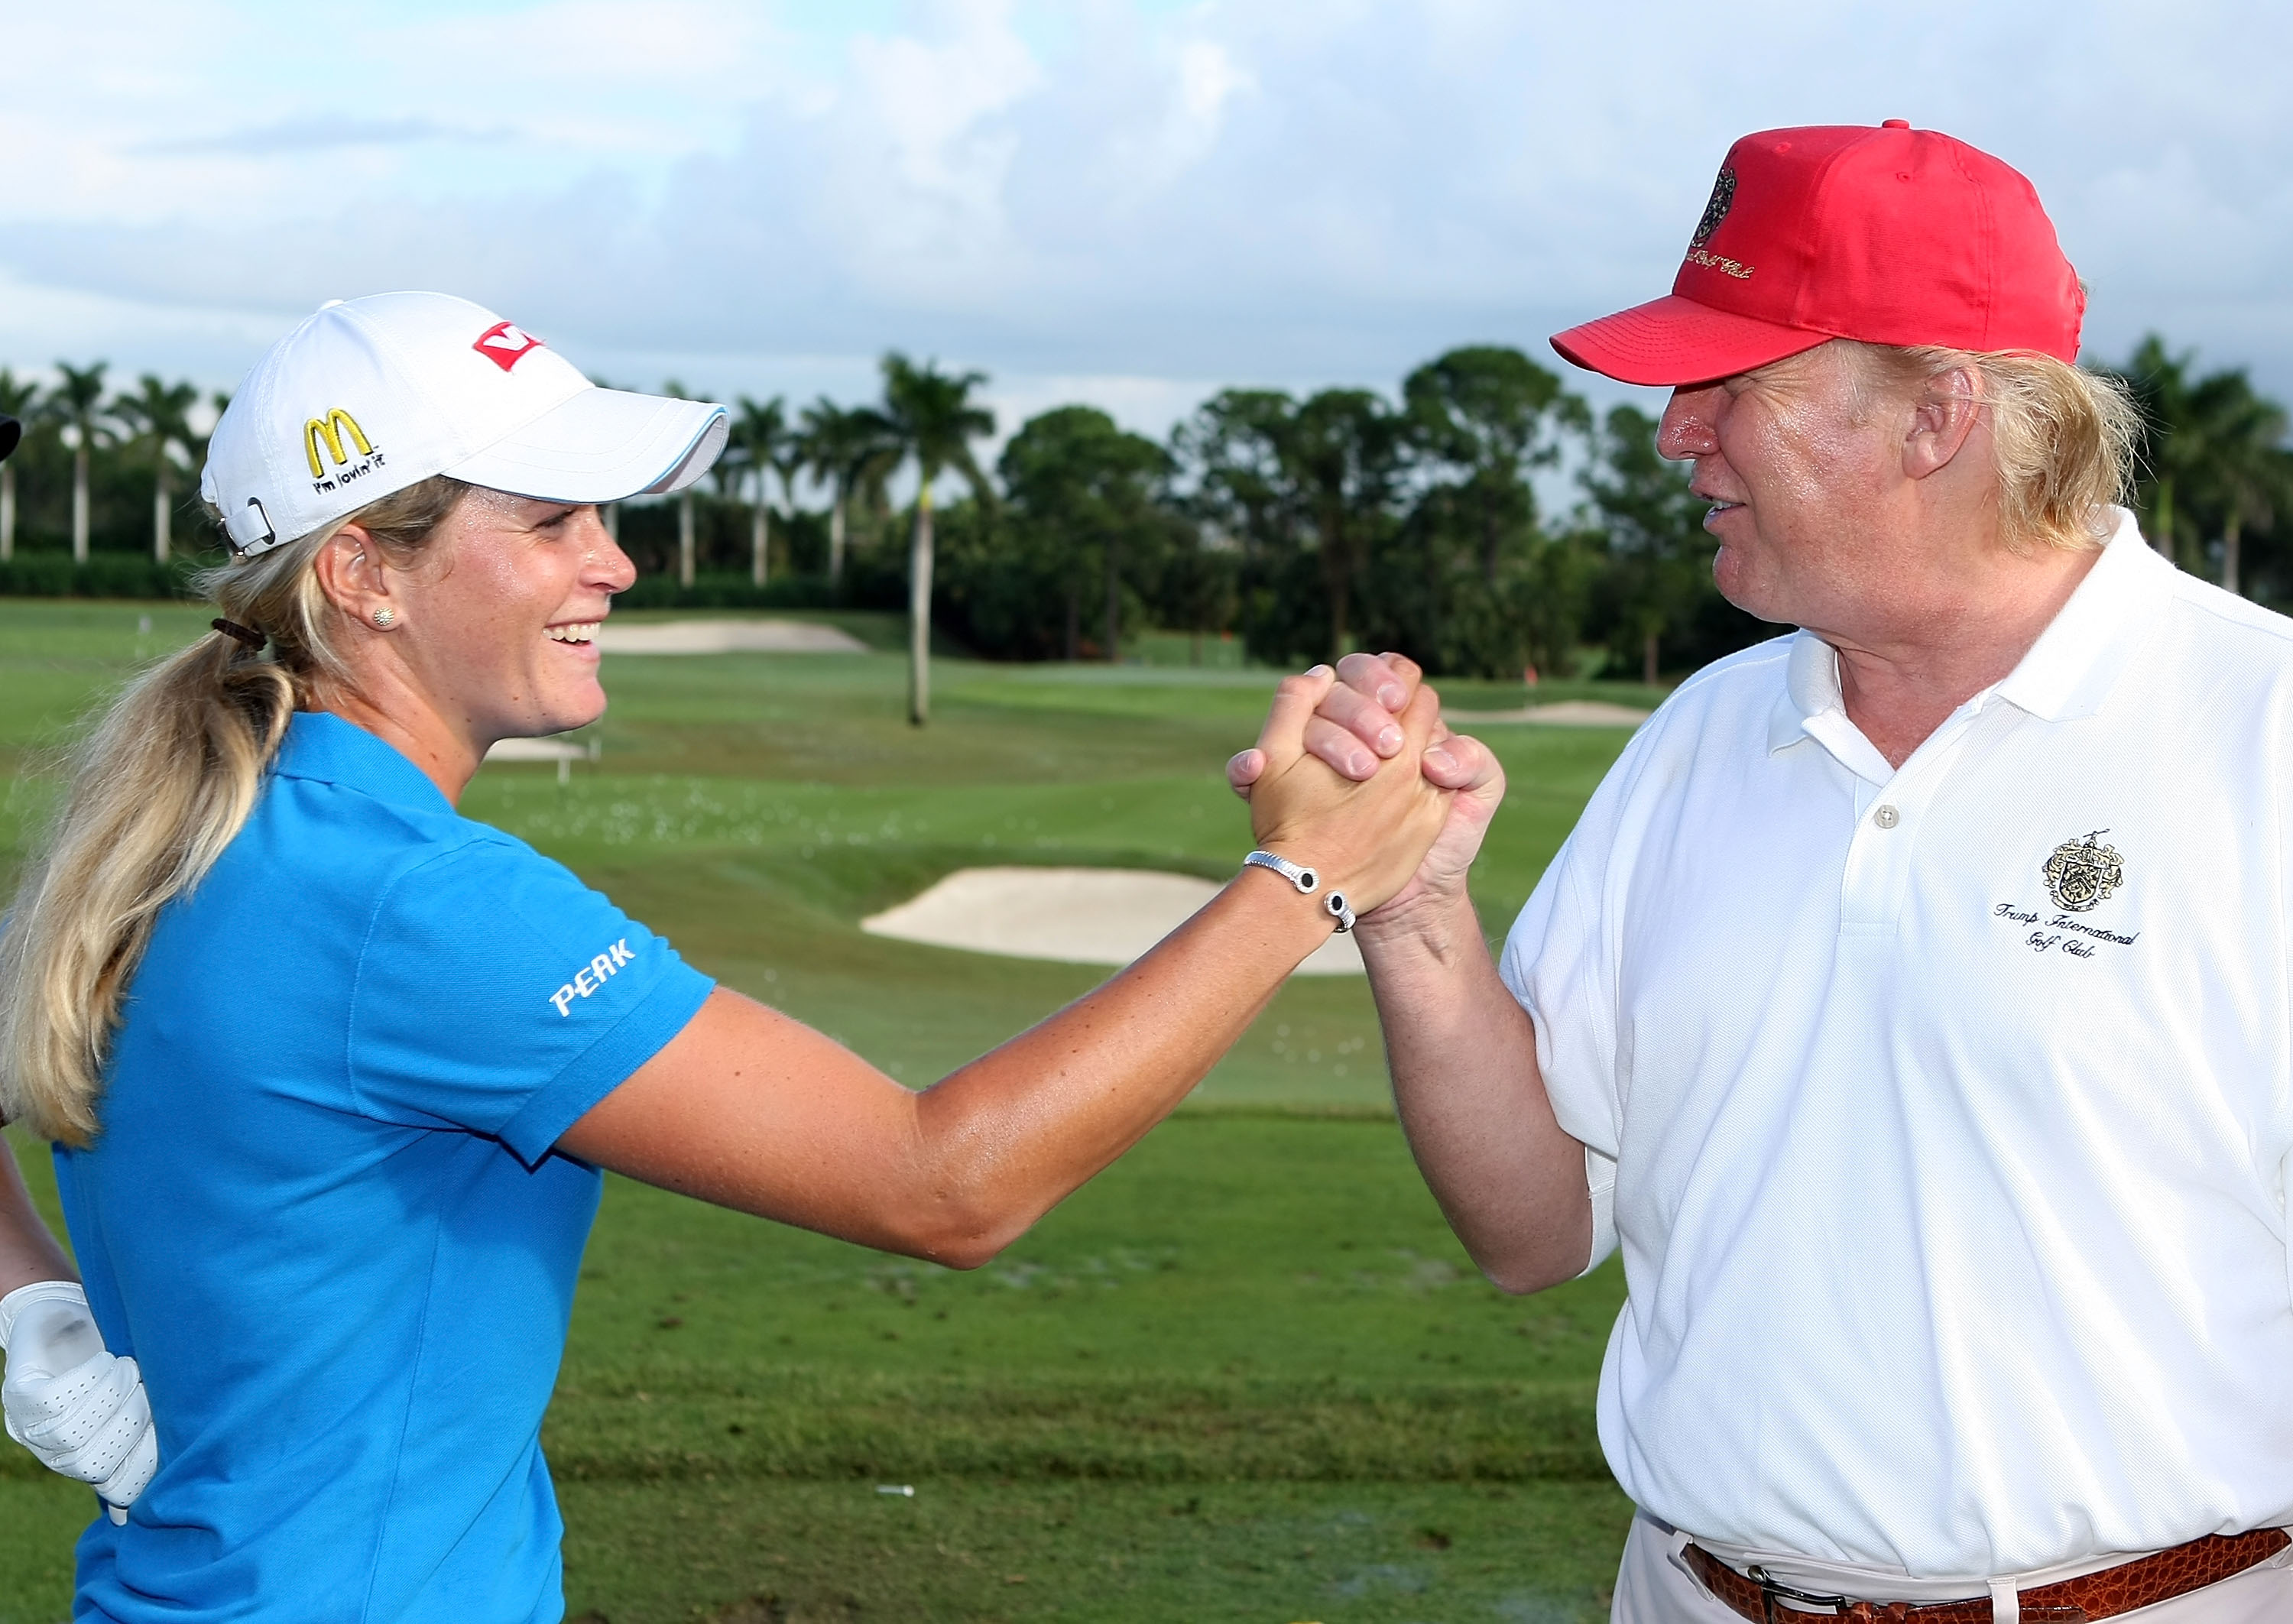 LPGA star Suzann Pettersen says Donald Trump 'cheats like hell' at golf